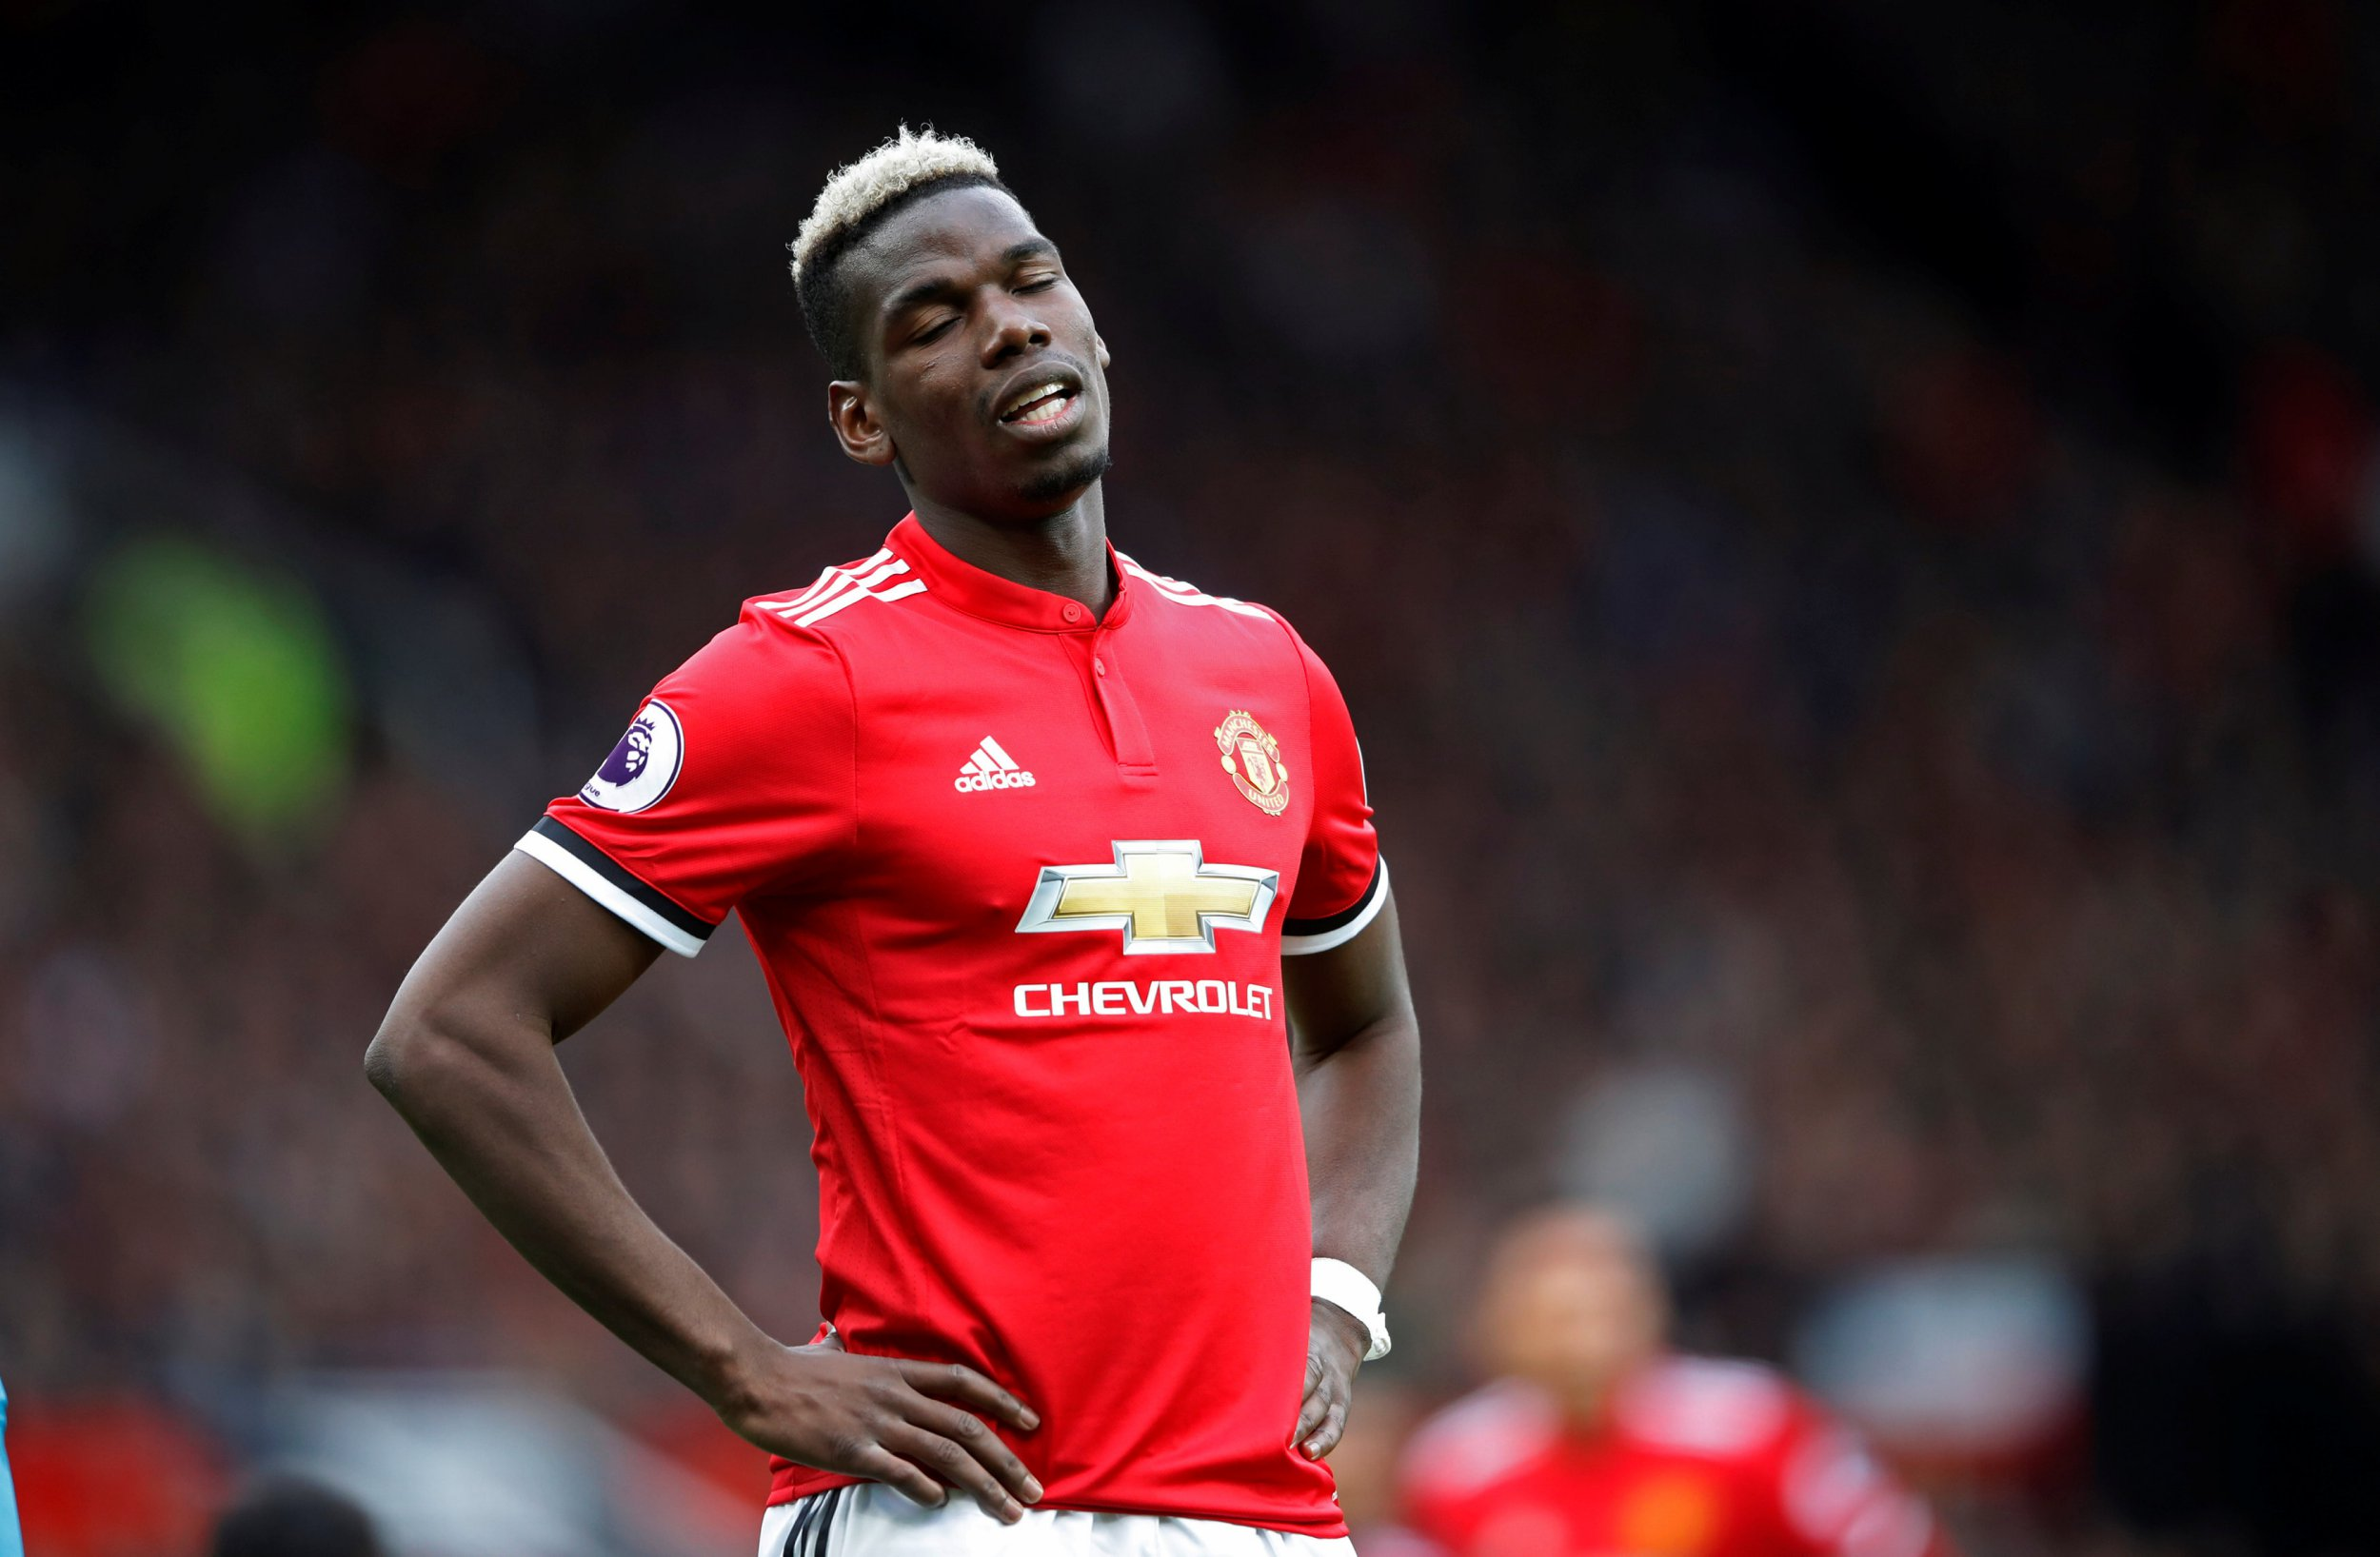 """Soccer Football - Premier League - Manchester United v Arsenal - Old Trafford, Manchester, Britain - April 29, 2018 Manchester United's Paul Pogba reacts Action Images via Reuters/Carl Recine EDITORIAL USE ONLY. No use with unauthorized audio, video, data, fixture lists, club/league logos or """"live"""" services. Online in-match use limited to 75 images, no video emulation. No use in betting, games or single club/league/player publications. Please contact your account representative for further details."""